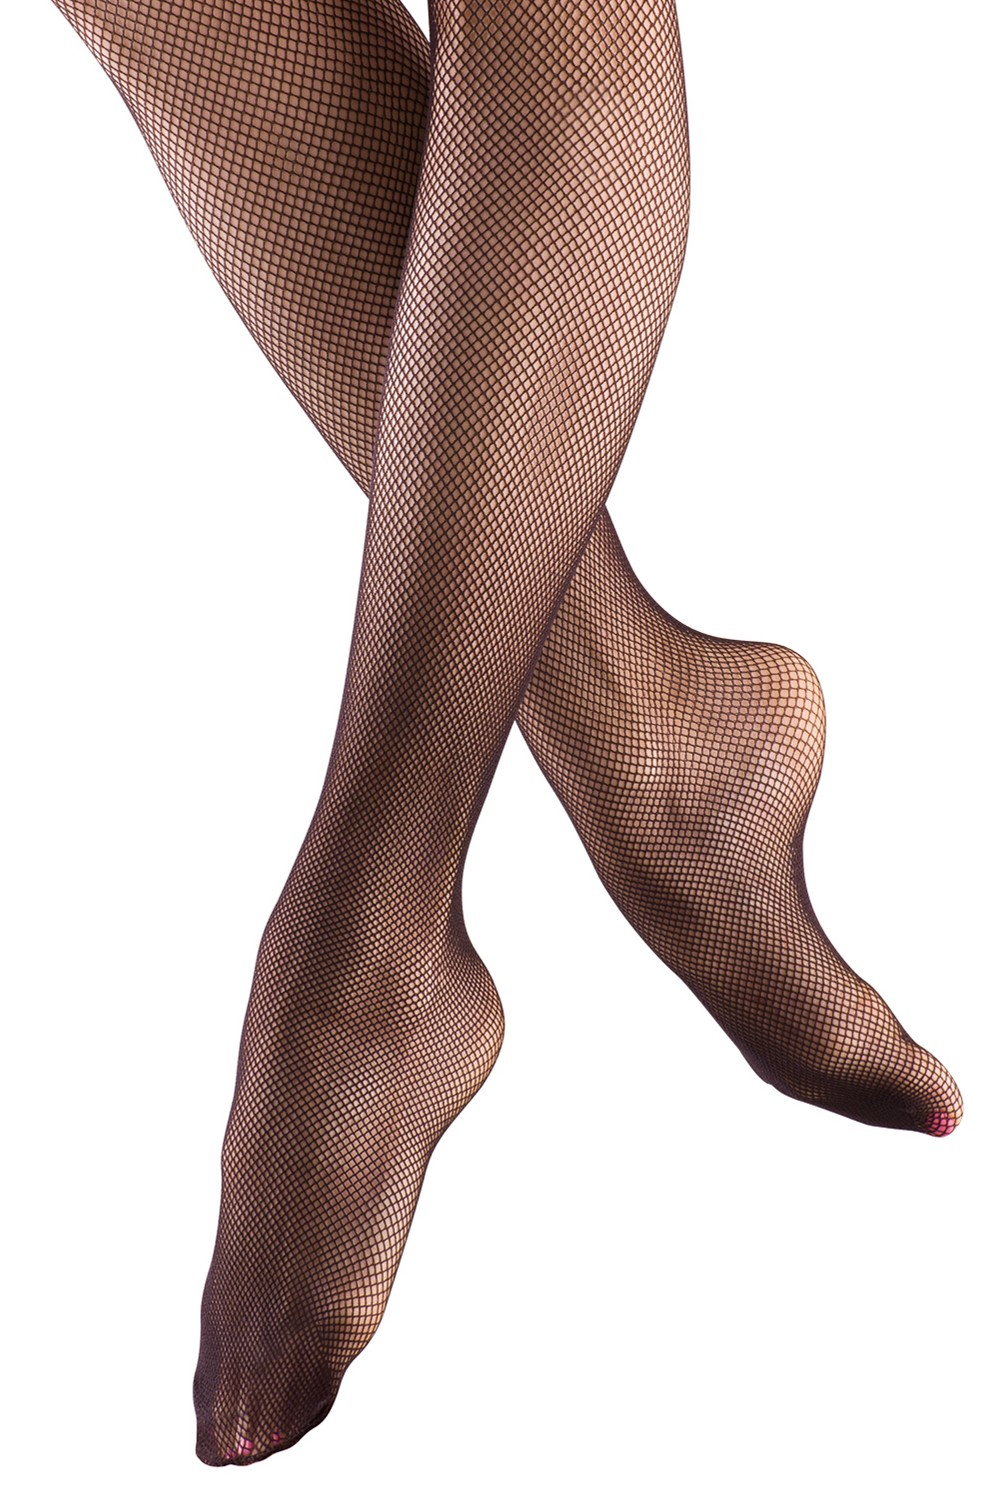 Collant Résille Fille Children's Dance Tights